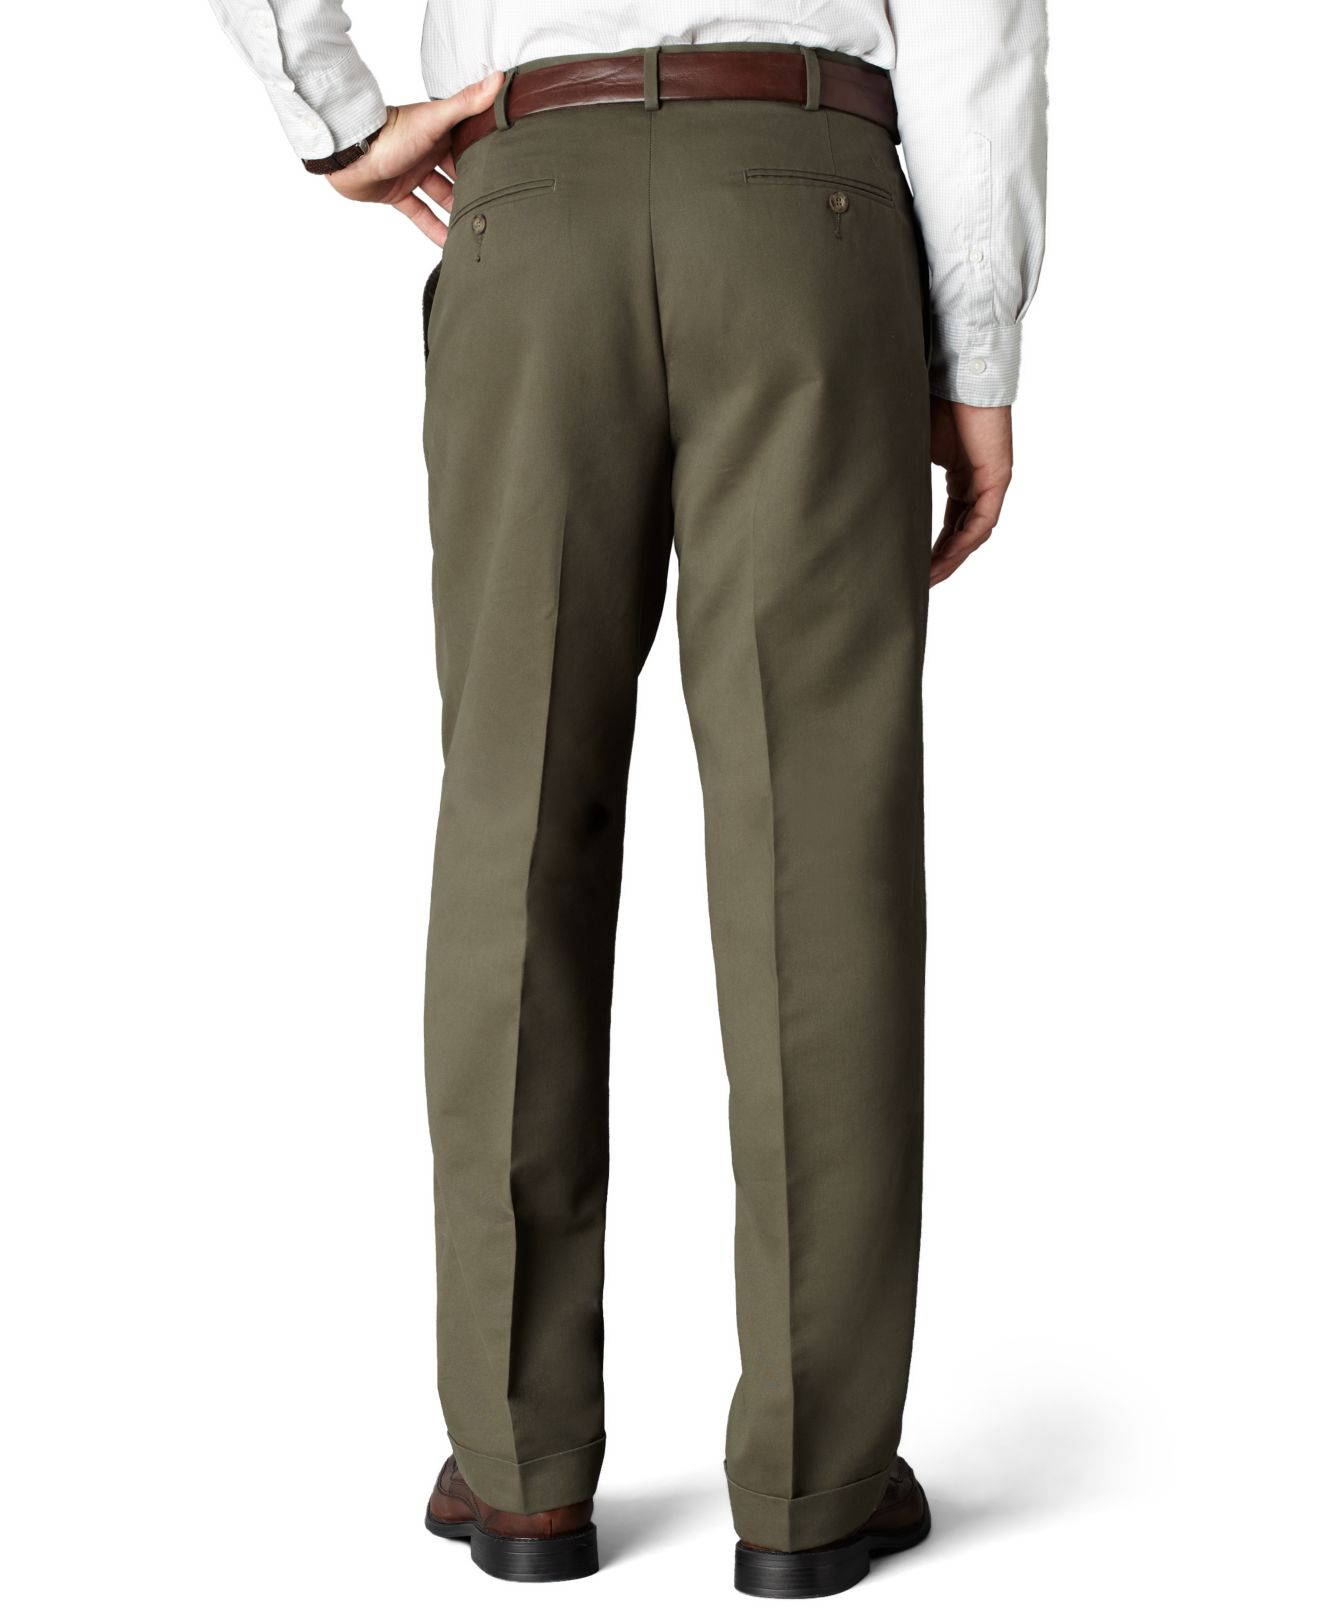 Lyst Dockers D4 Relaxed Fit Comfort Khaki Pleated Pants